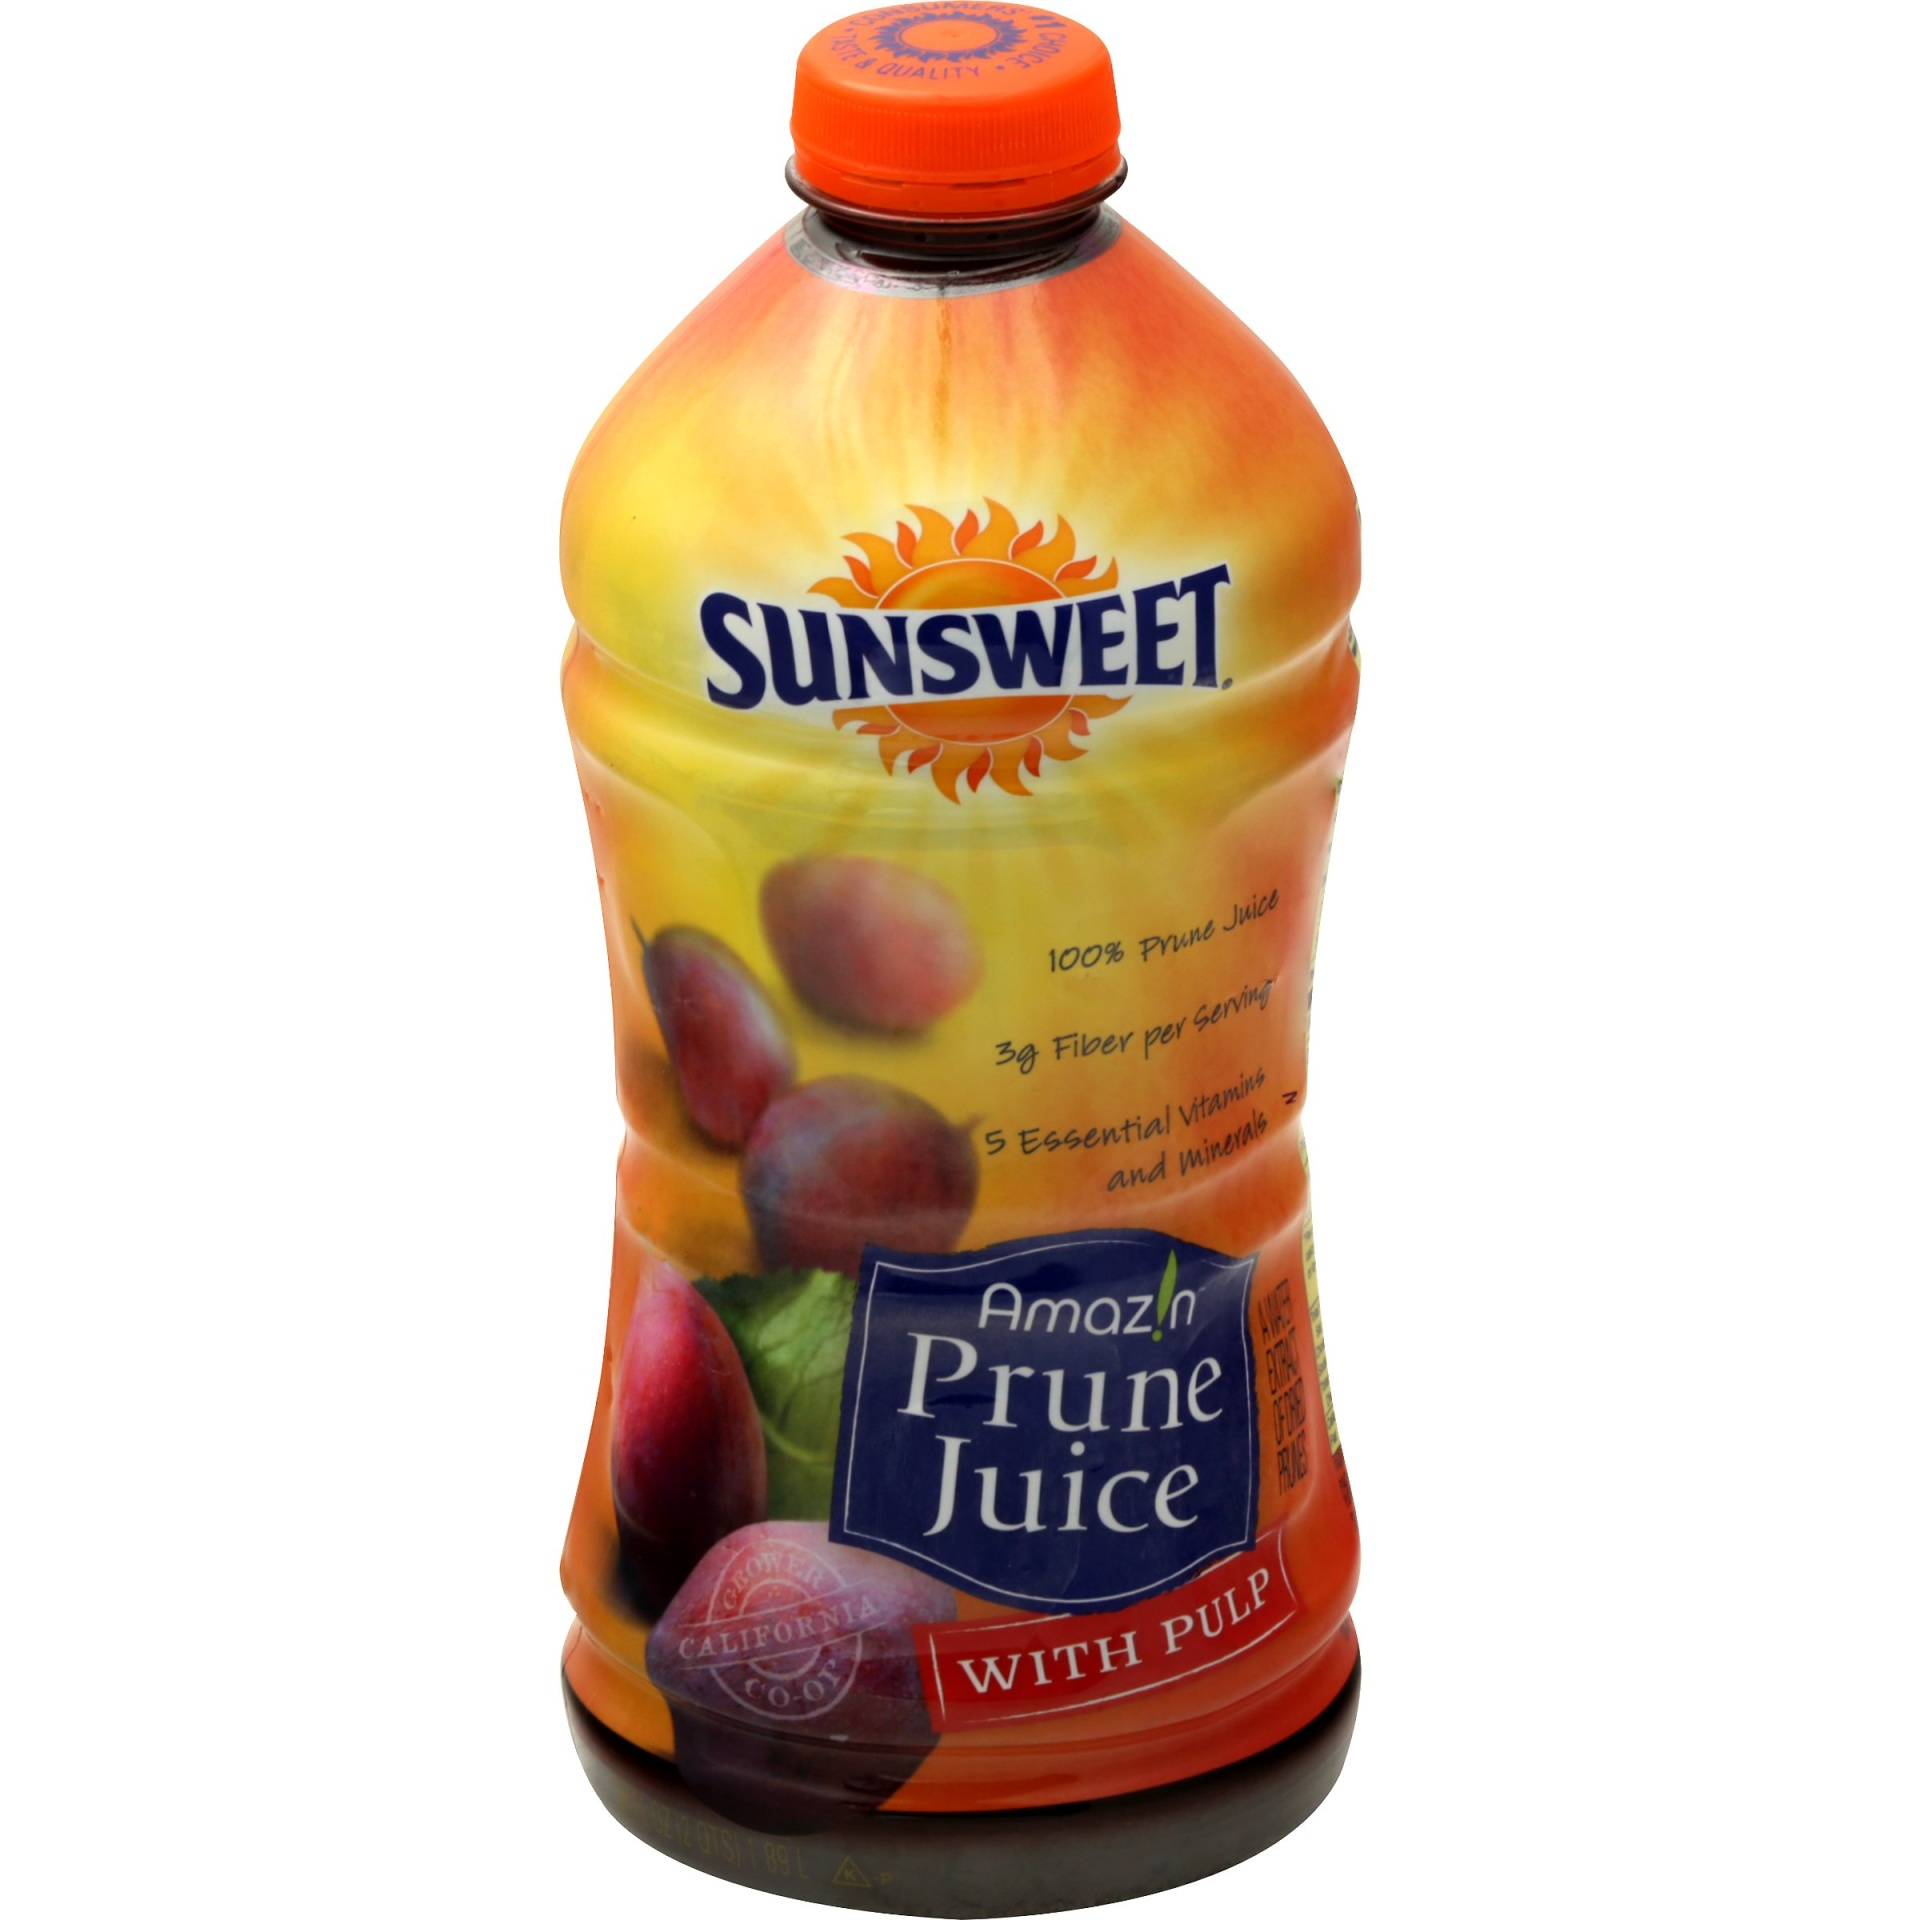 slide 1 of 2, Sunsweet Prune Juice With Pulp,